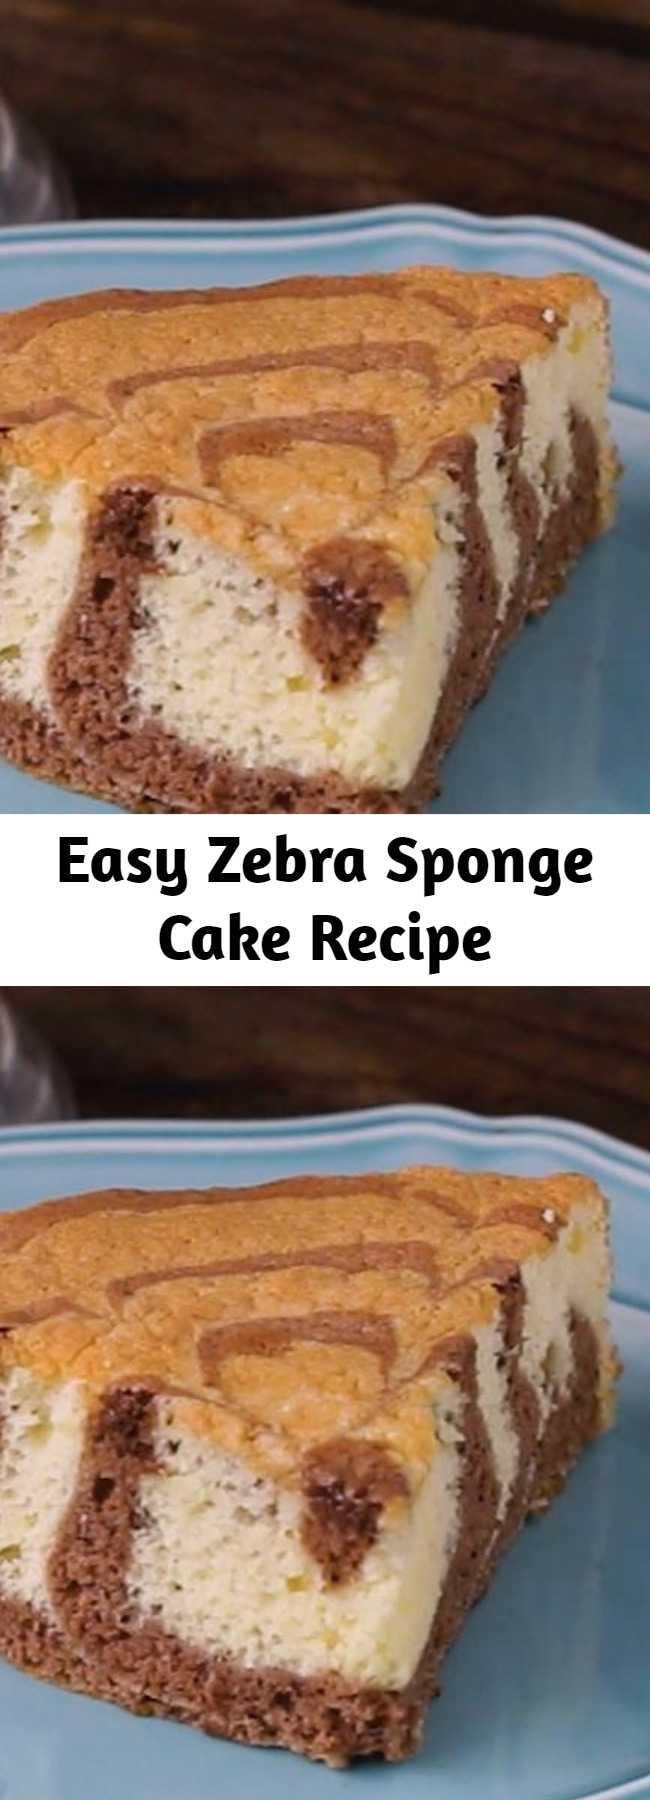 Easy Zebra Sponge Cake Recipe - We wanted a sponge cake recipe that gave us a fairly light cake, one with a springy but delicate texture that could stand up nicely to custard fillings.